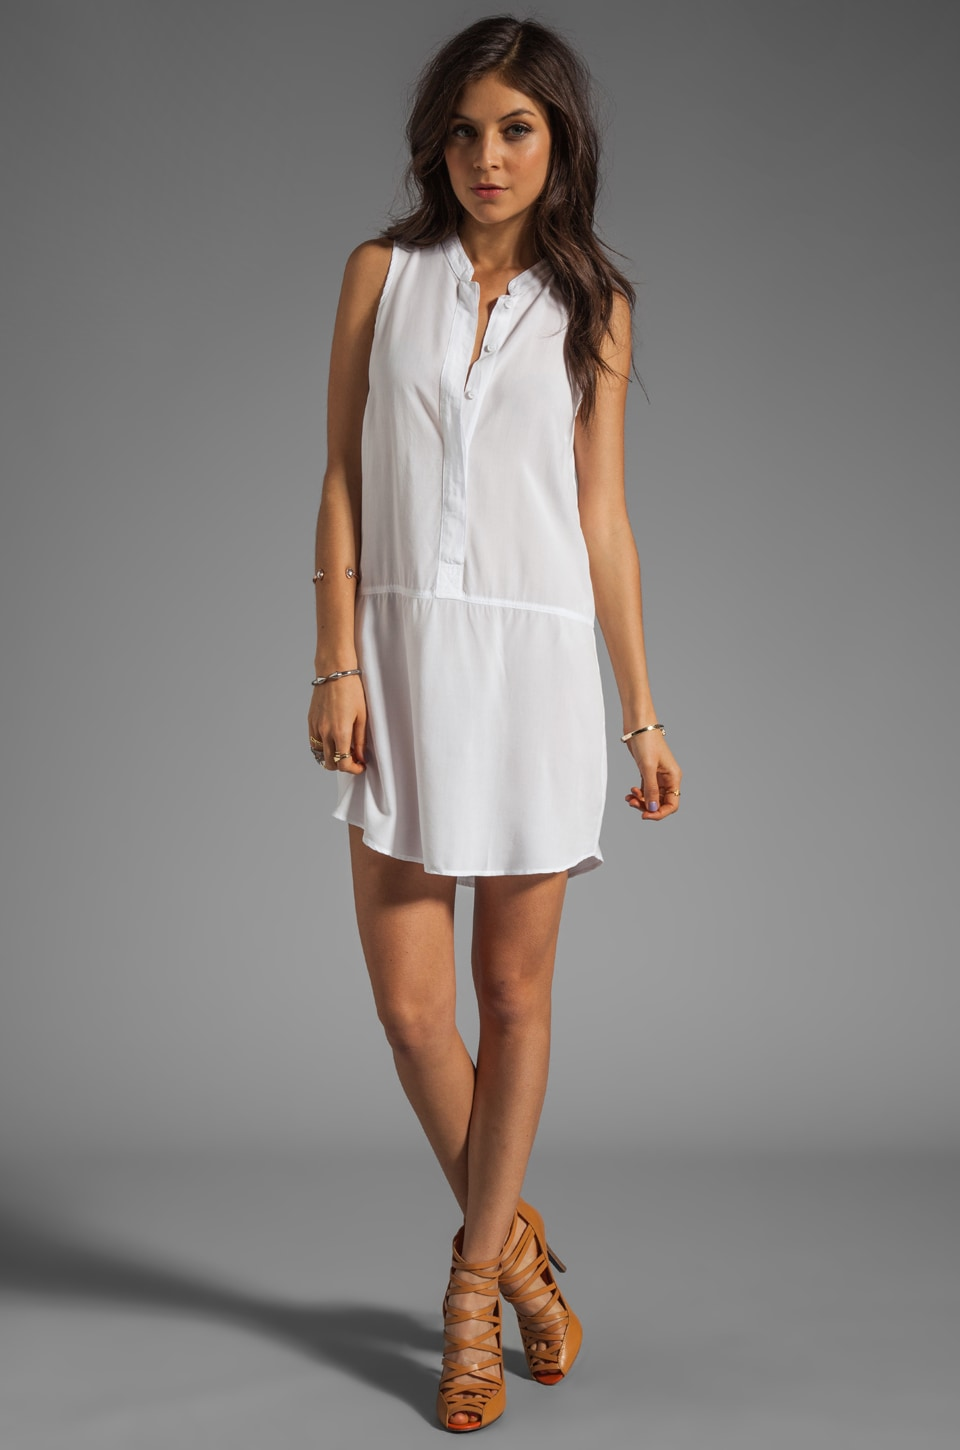 Splendid Tank Dress in White